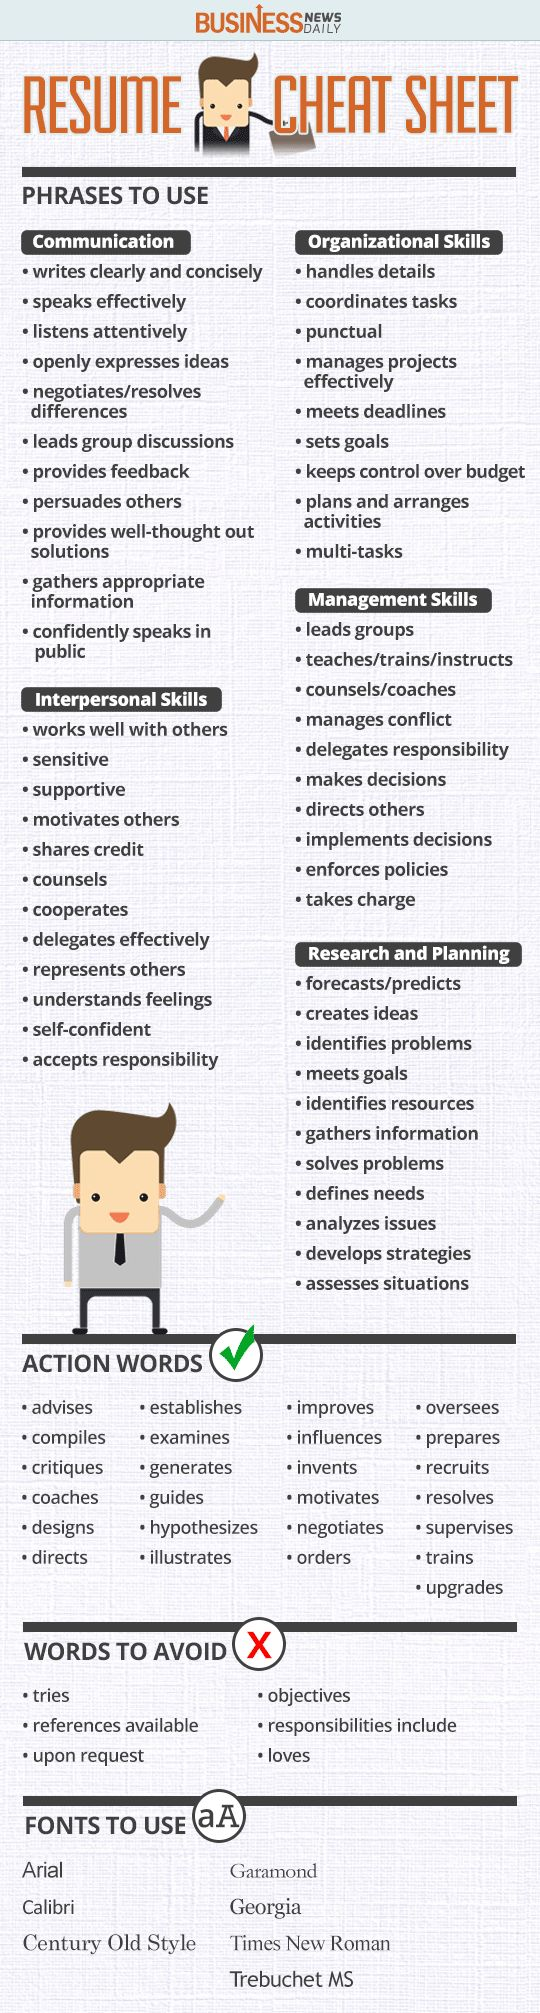 Opposenewapstandardsus  Wonderful  Ideas About Resume On Pinterest  Cv Format Resume  With Licious Resume Cheat Sheet Infographic Andrews Almost Done With A Complete Unit On Employment Which With Nice Graphic Design Resume Template Also Bad Resume Examples In Addition Art Teacher Resume And General Resume Objective Examples As Well As Additional Skills For Resume Additionally Personal Resume From Pinterestcom With Opposenewapstandardsus  Licious  Ideas About Resume On Pinterest  Cv Format Resume  With Nice Resume Cheat Sheet Infographic Andrews Almost Done With A Complete Unit On Employment Which And Wonderful Graphic Design Resume Template Also Bad Resume Examples In Addition Art Teacher Resume From Pinterestcom